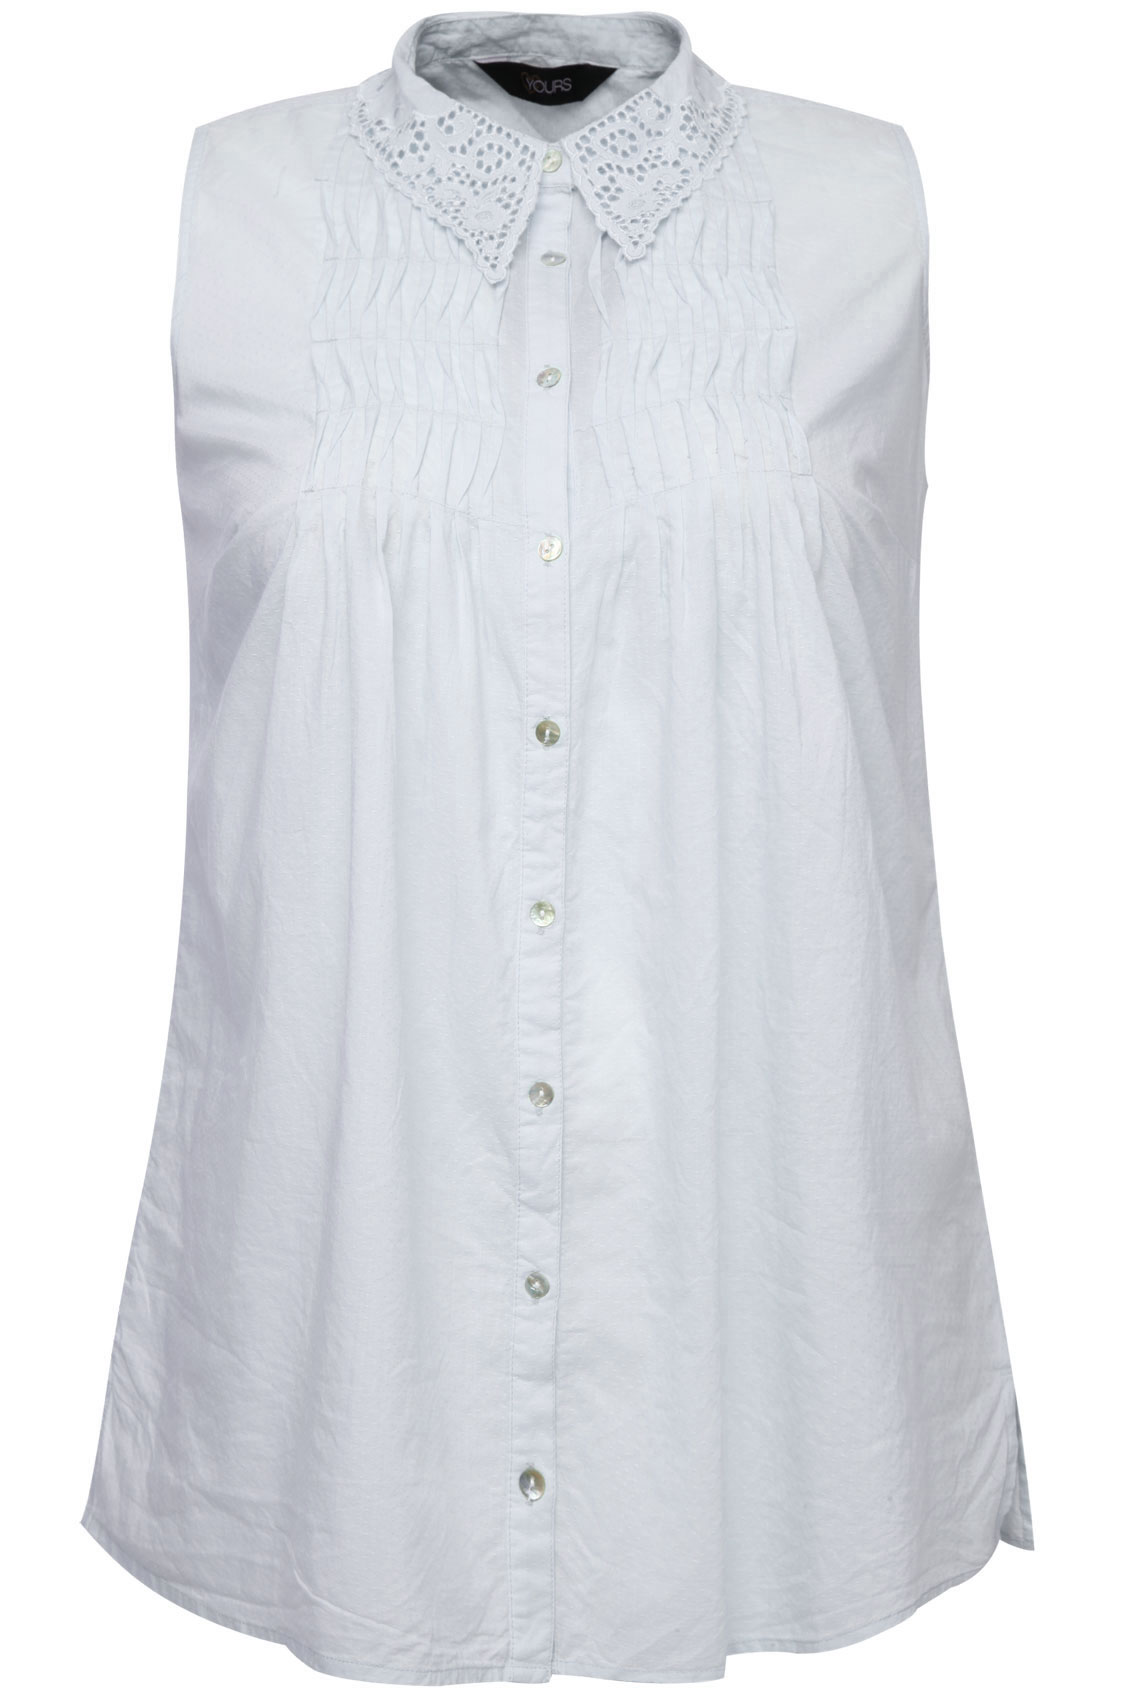 White Sleeveless Dobby Shirt With Broderie Anglaise Collar